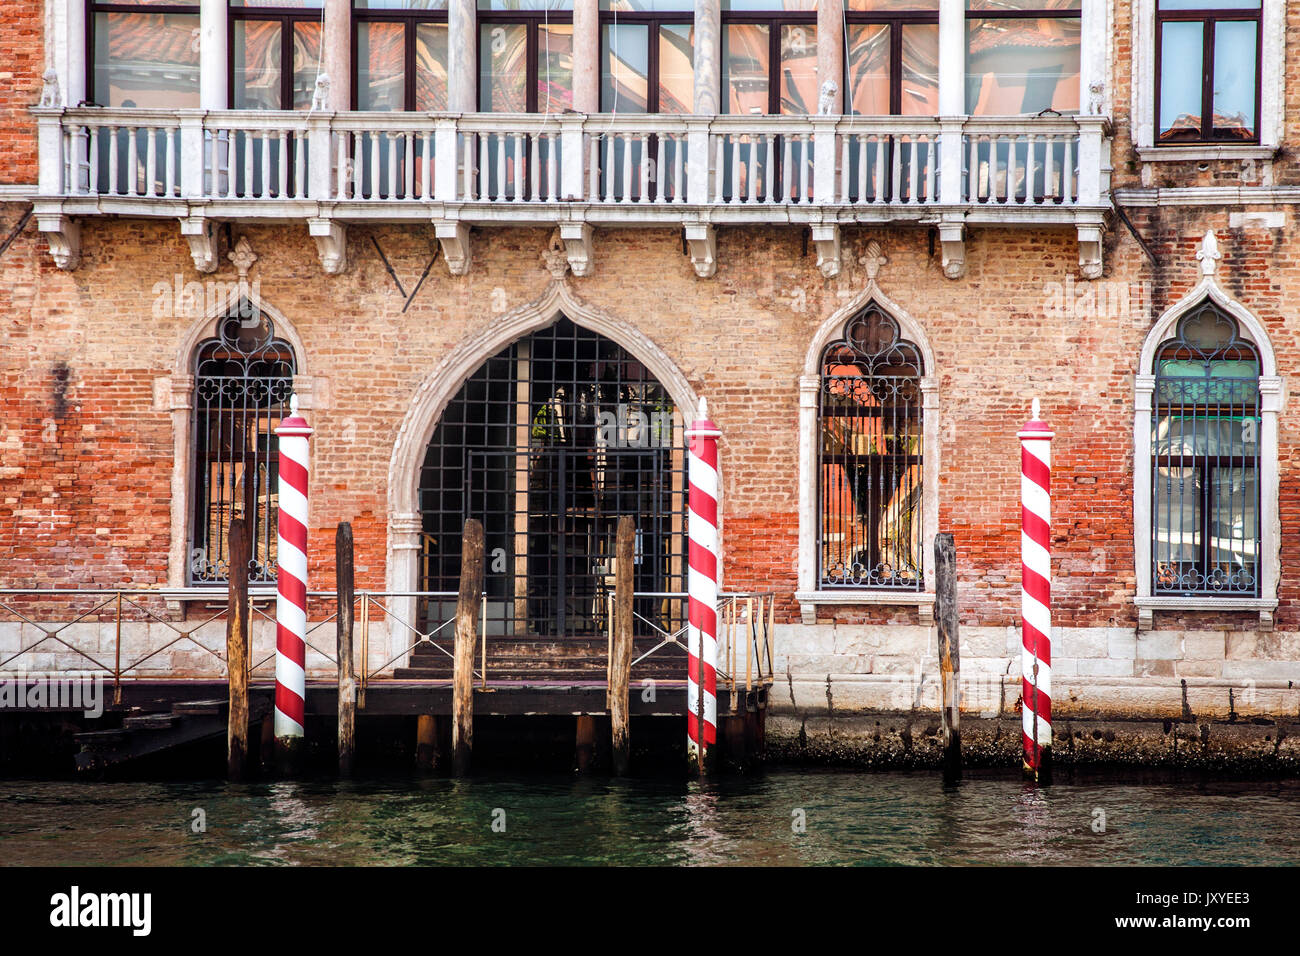 Entrance to a building just off the Grand Canal in Venice, Italy. - Stock Image